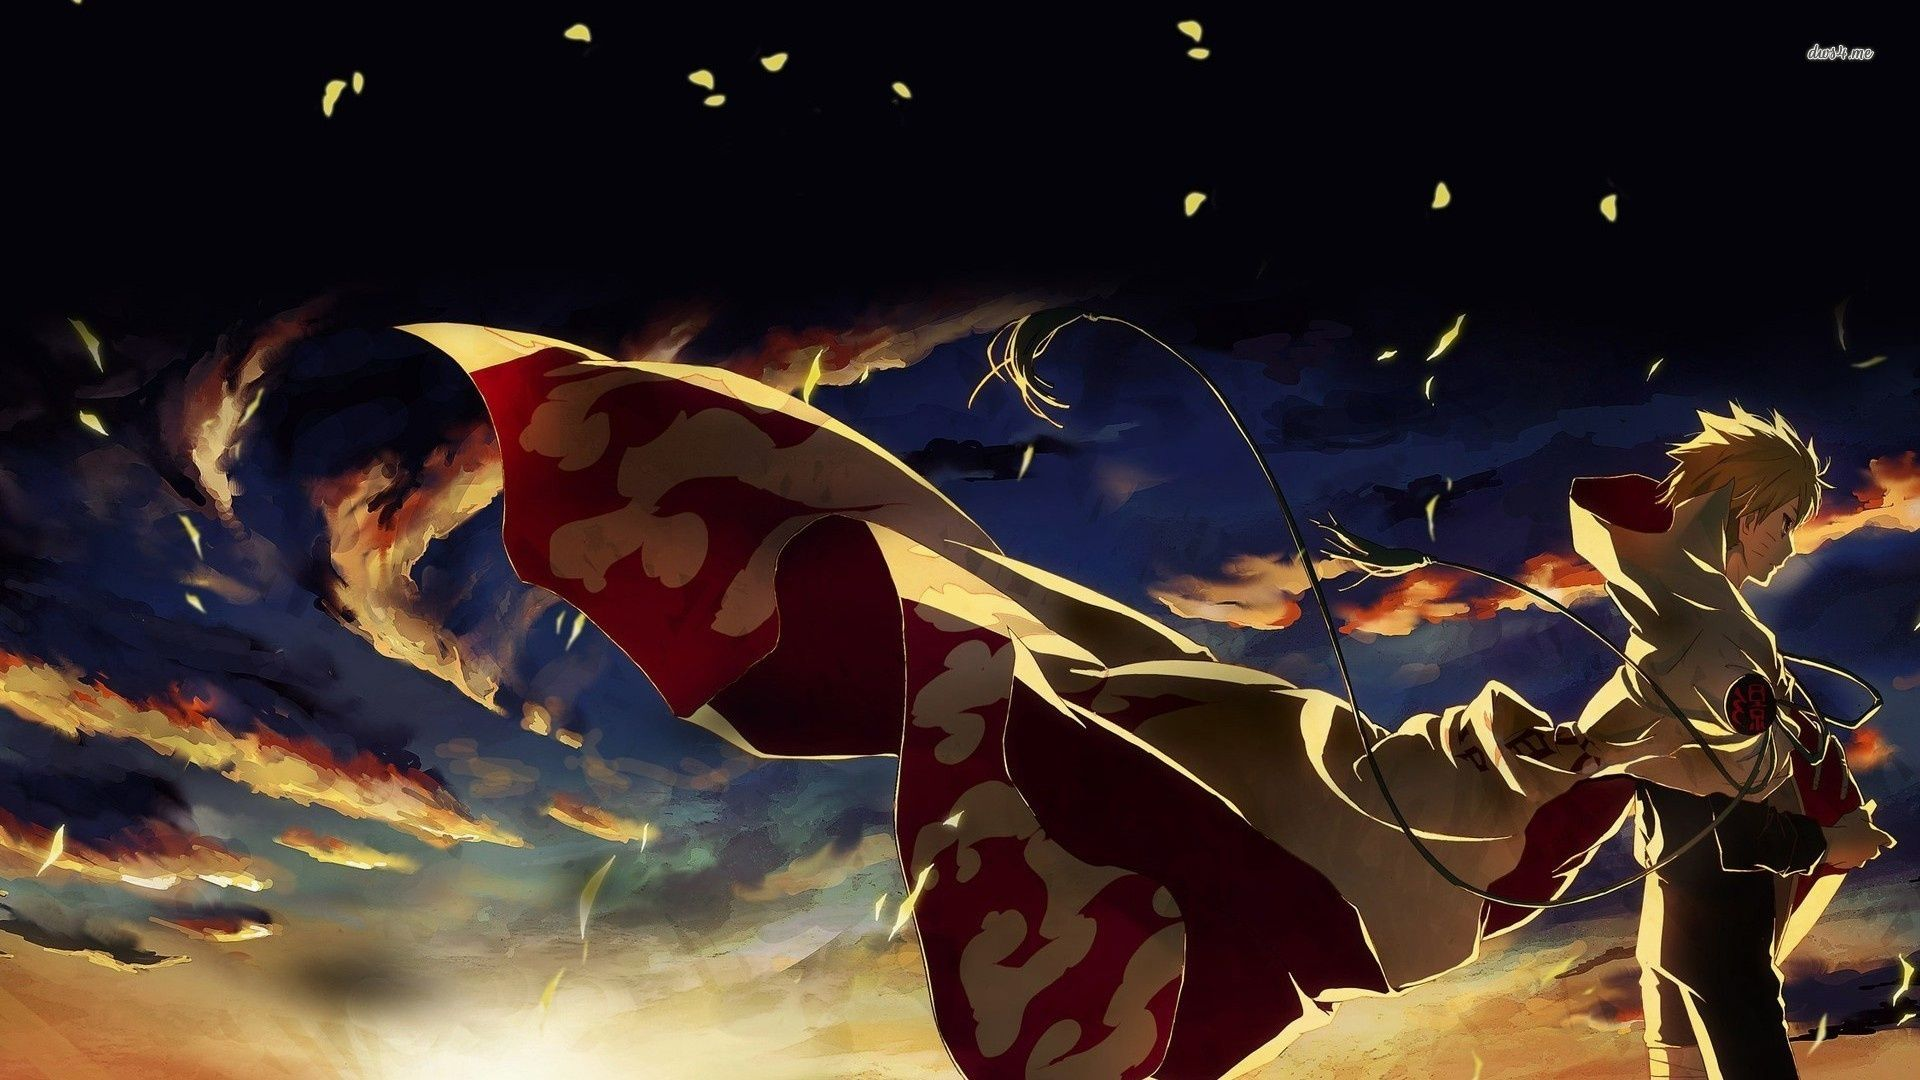 Anime Best Wallpapers Hd Di 2020 Dengan Gambar Animasi Naruto